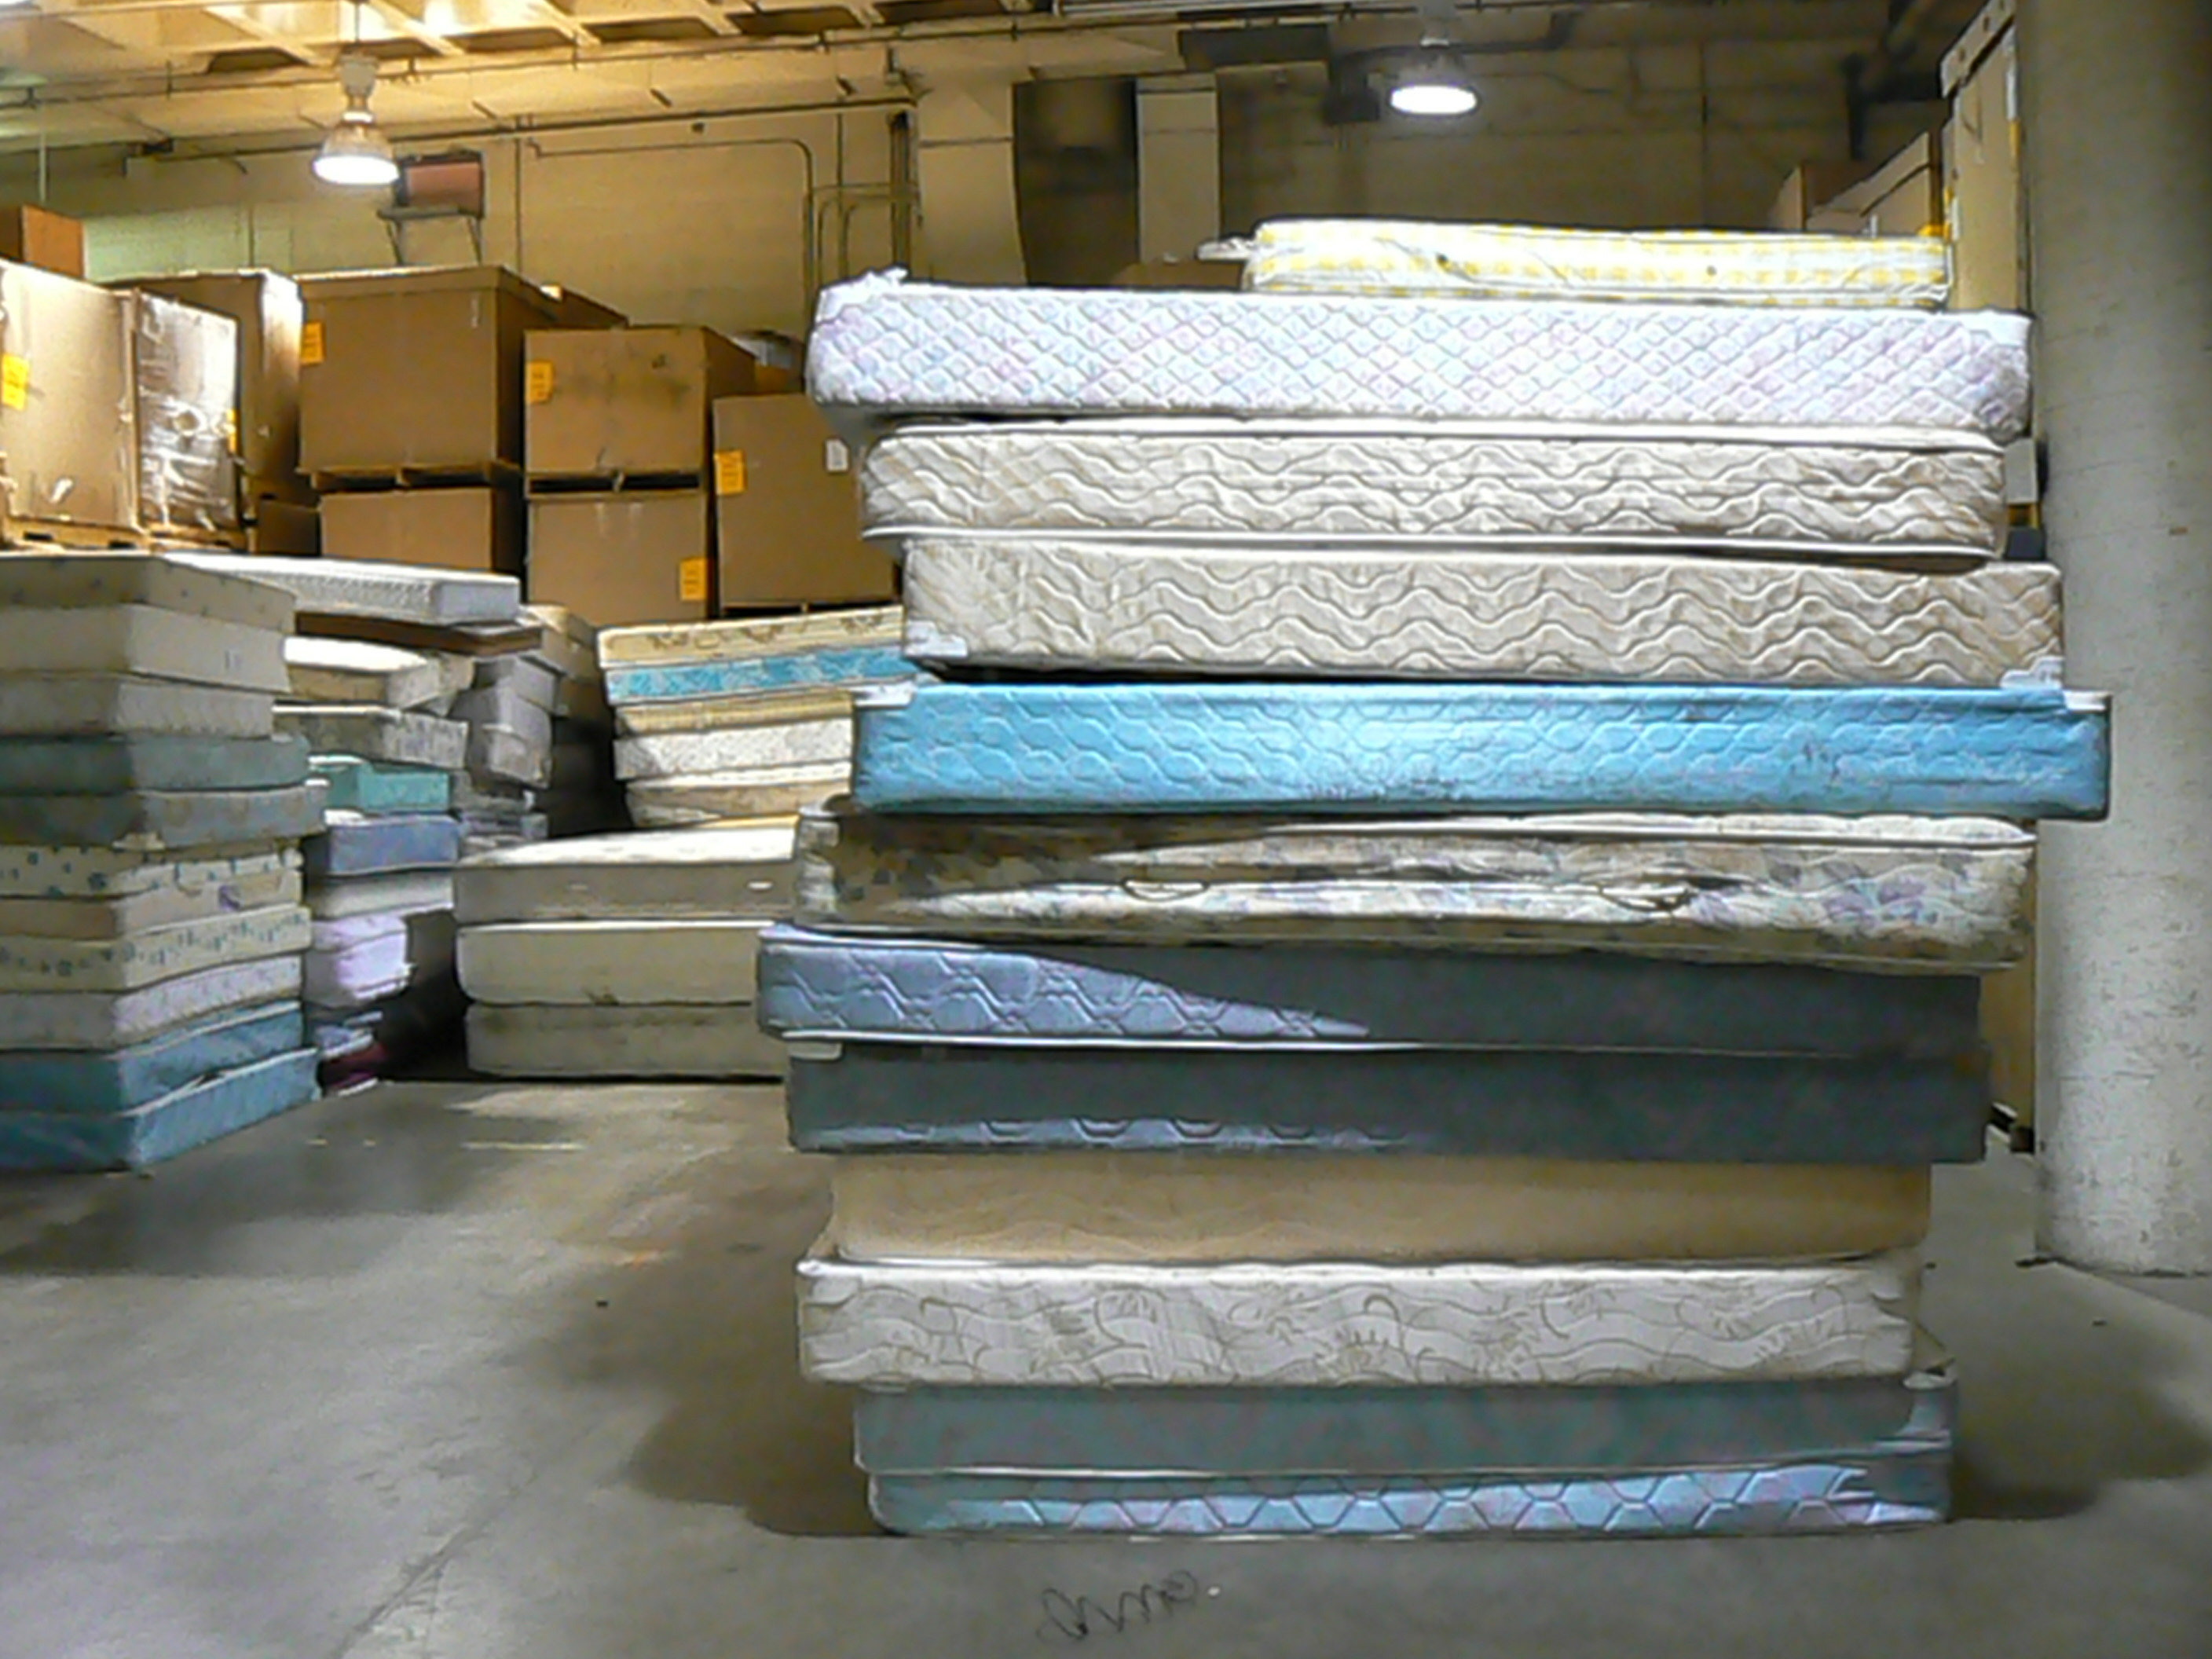 Mattress Recycling Down To The Springs